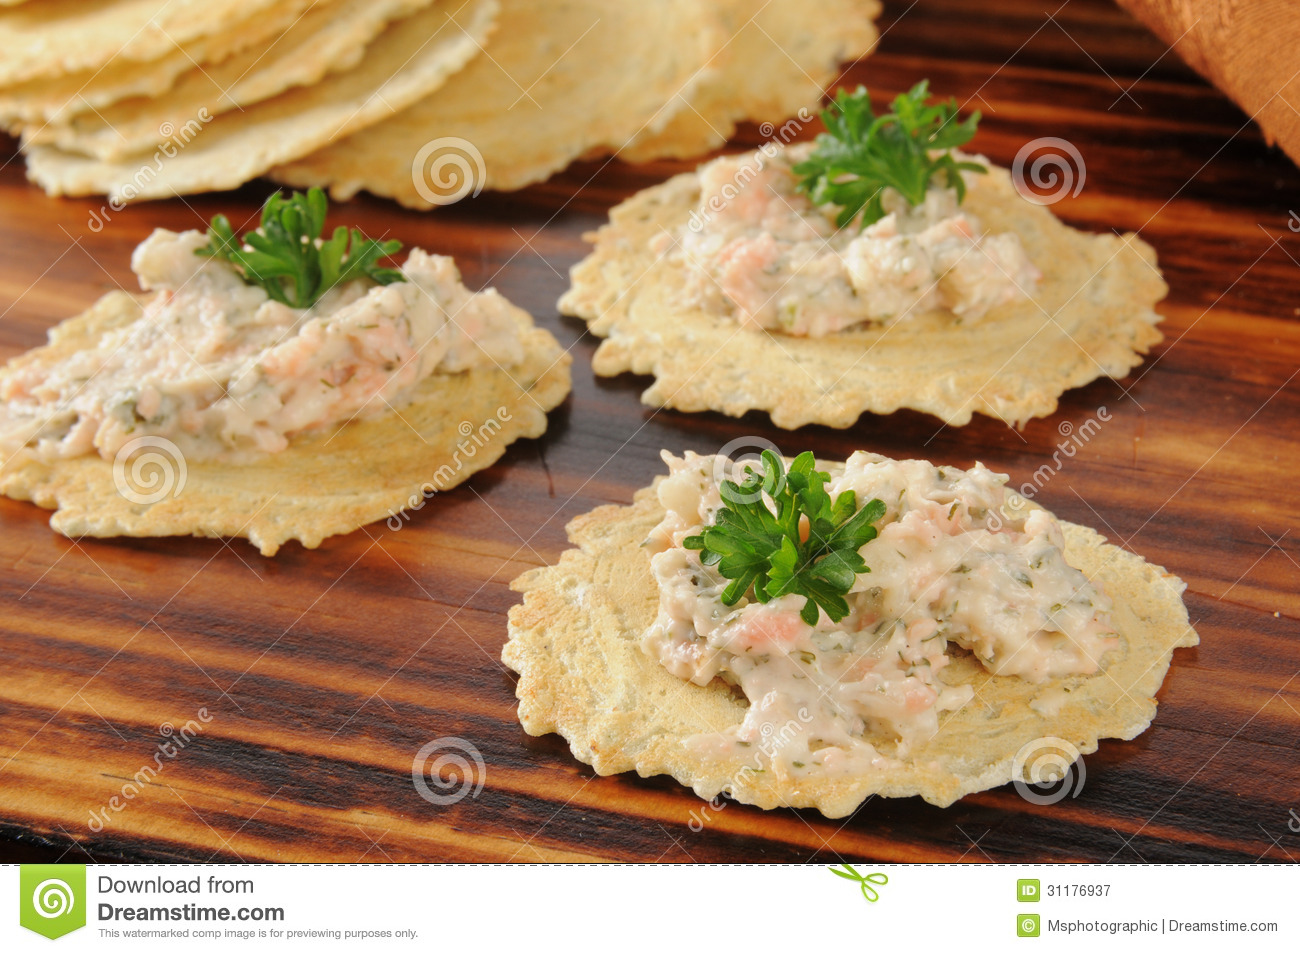 Smoked Salmon Dip On Gourmet Crackers Royalty Free Stock Photography